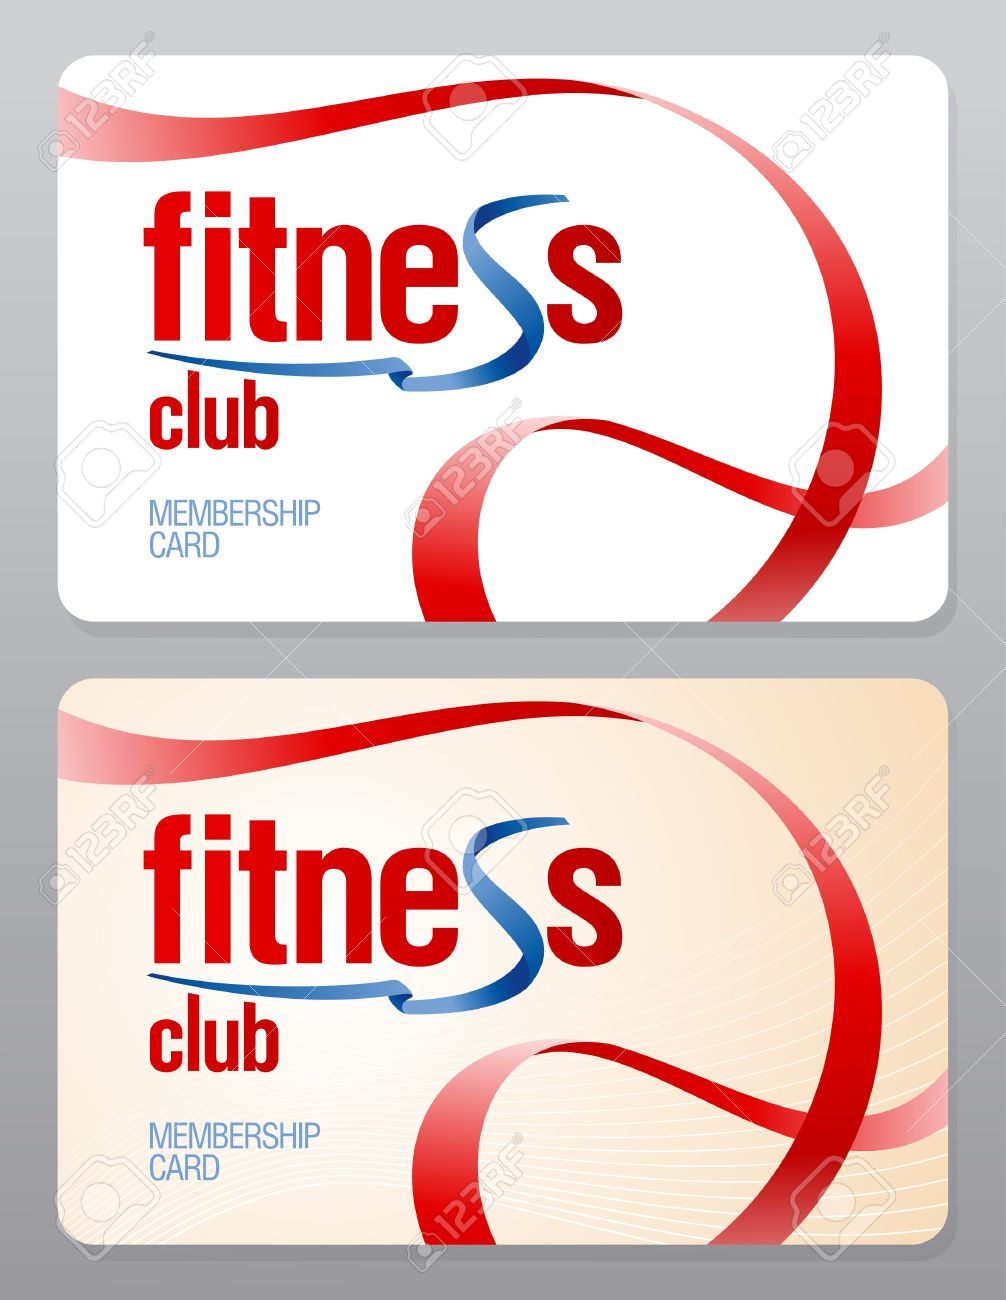 Fitness Club Membership Card Design Template. Royalty Free ...